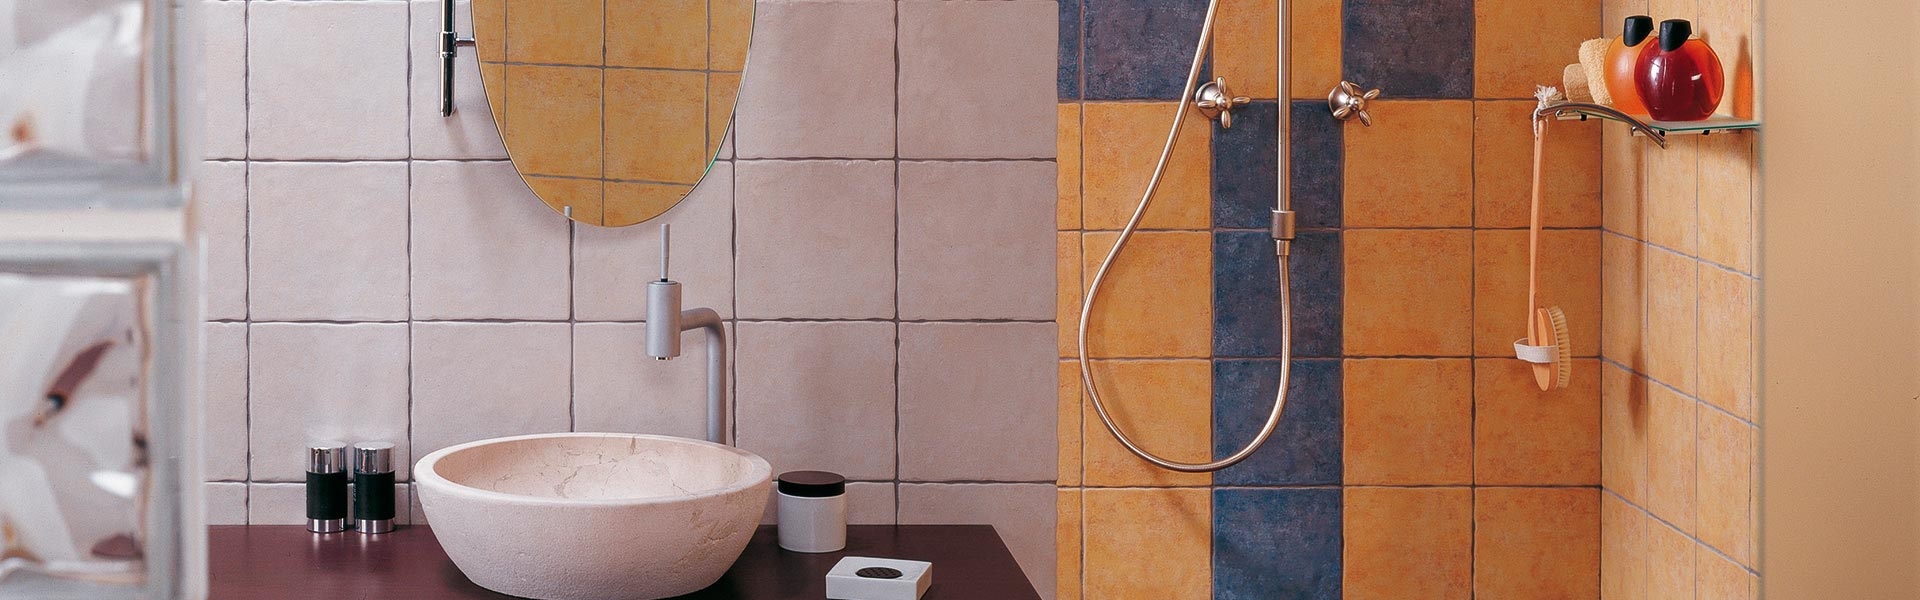 Vives floor tiles gres naval 20x20 naval gres floor tiles by vives azulejos y gres sa dailygadgetfo Choice Image